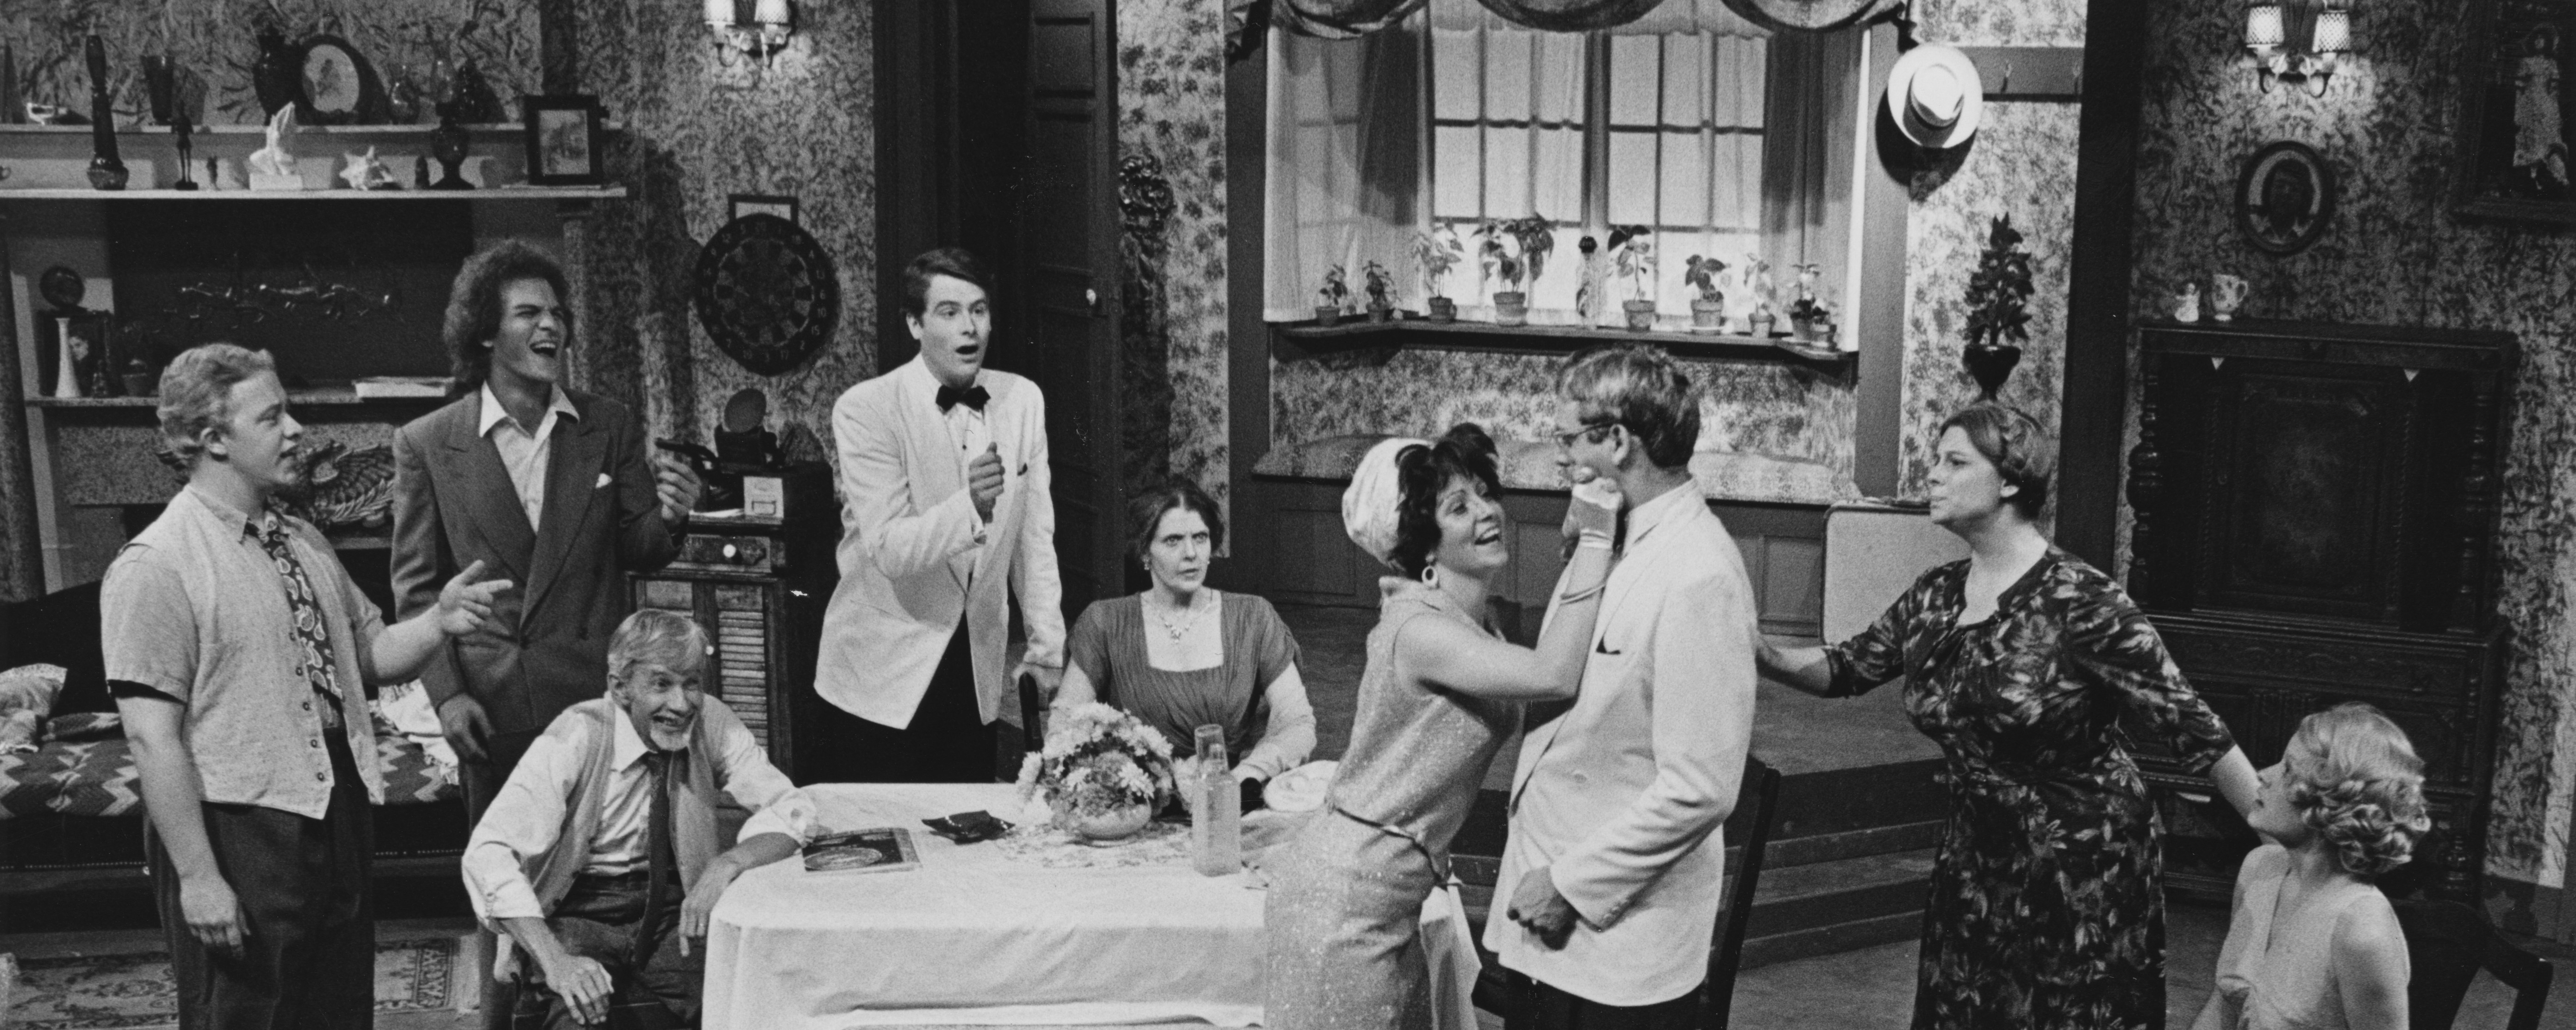 Actors perform in a scene from an early Porthouse Theatre production